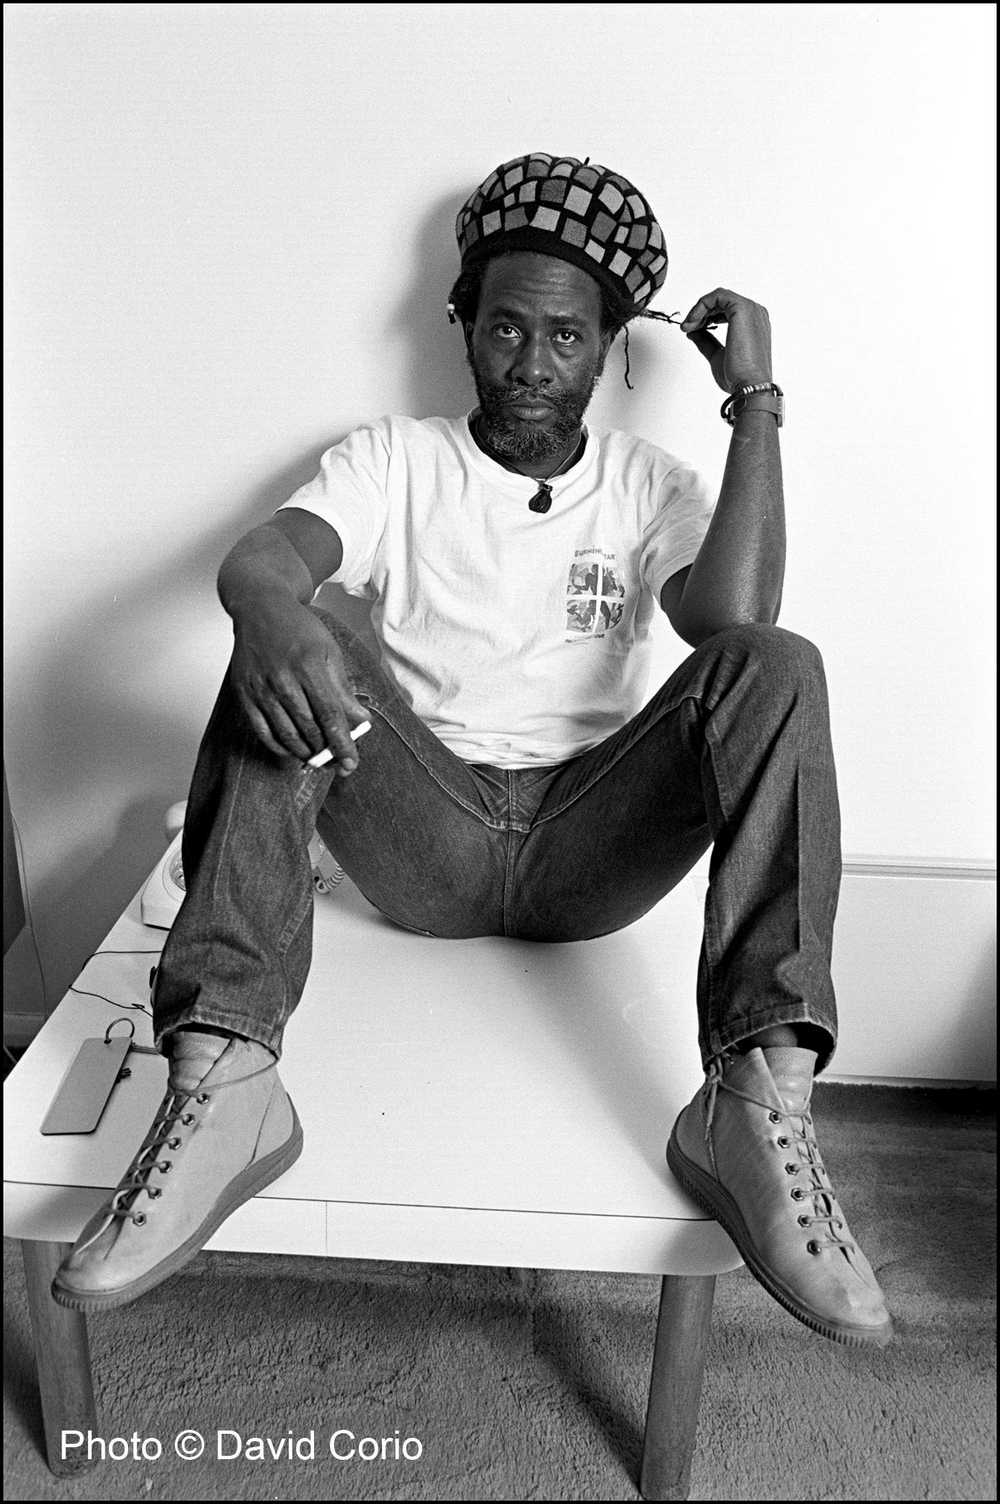 Burning Spear at Kensington Garden Apartments, London, UK (March 18, 1987) by David Corio